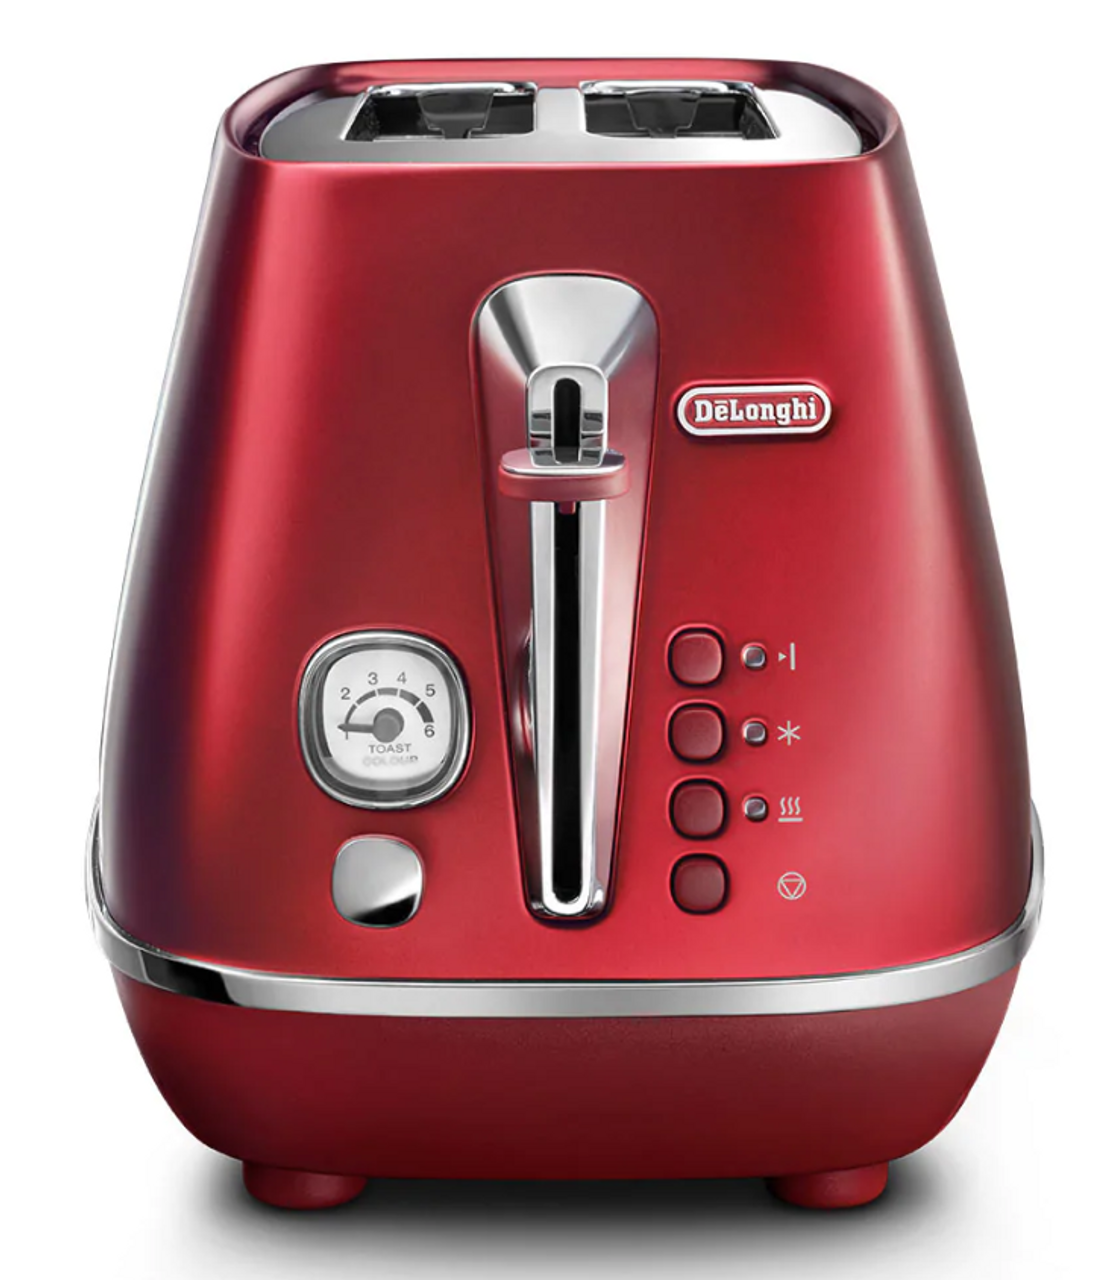 Delonghi CTI2003R Distinta Flair 2 Slice Toaster With Non-slip Feet- Glamour Red